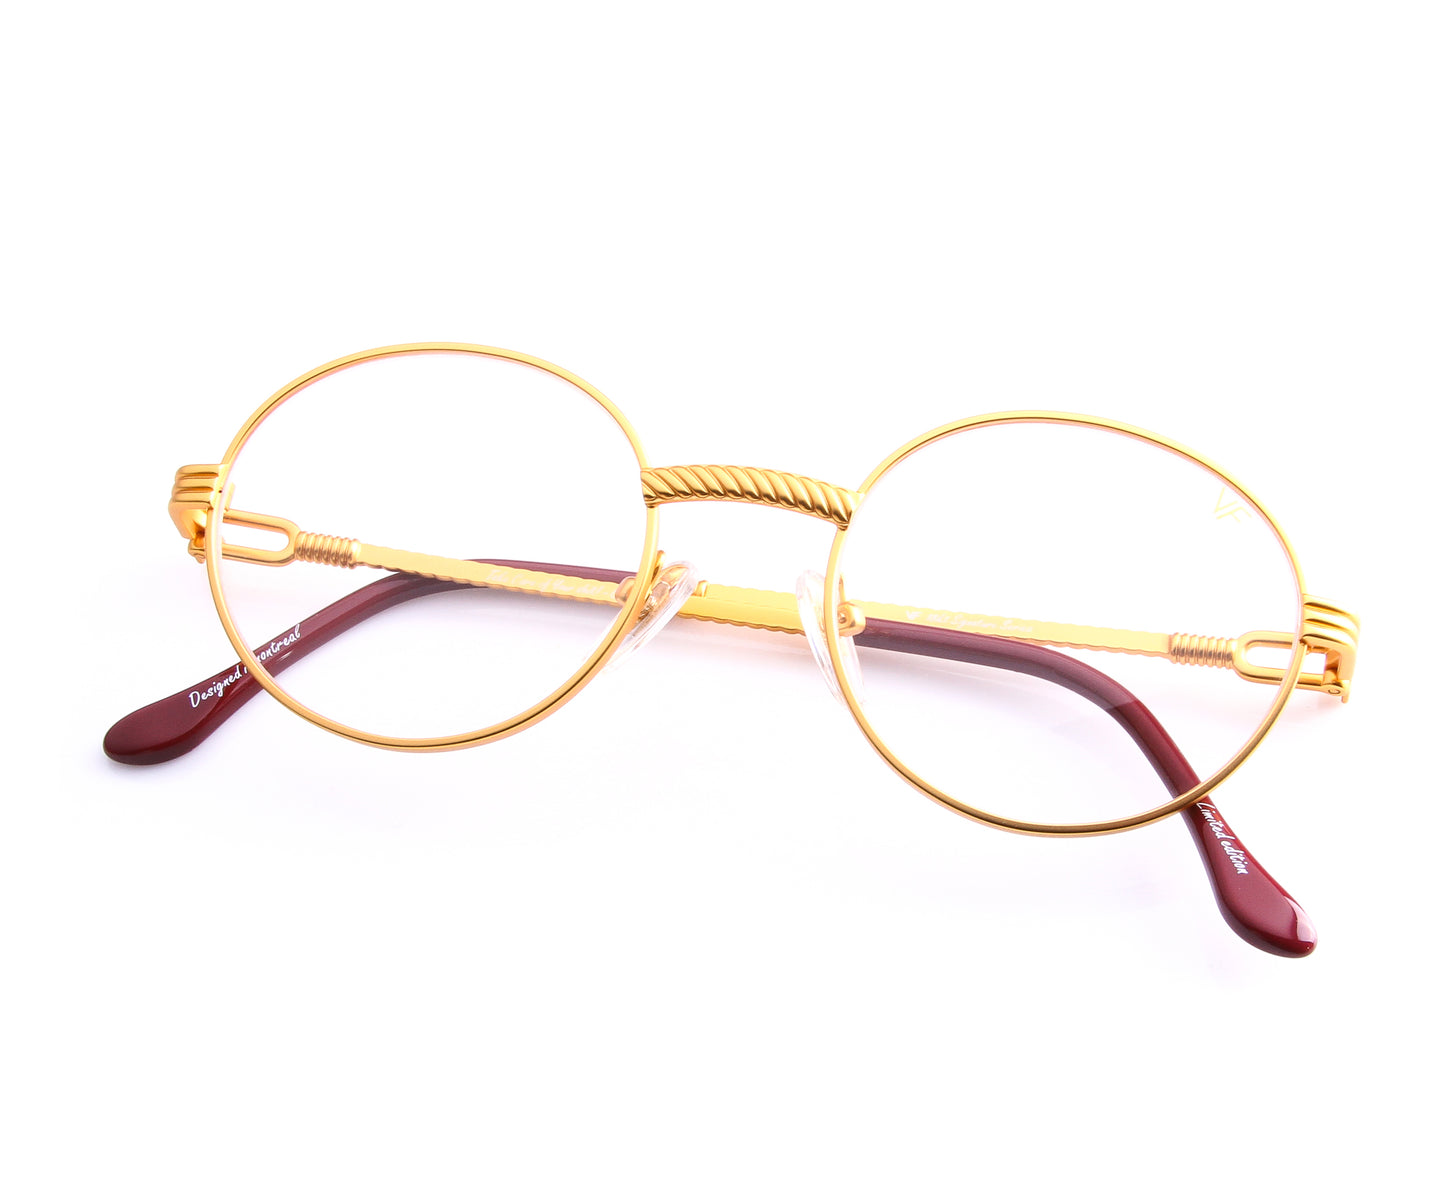 VF 508 18KT Satin Gold (Clear), VF by Vintage Frames , glasses frames, eyeglasses online, eyeglass frames, mens glasses, womens glasses, buy glasses online, designer eyeglasses, vintage sunglasses, retro sunglasses, vintage glasses, sunglass, eyeglass, glasses, lens, vintage frames company, vf